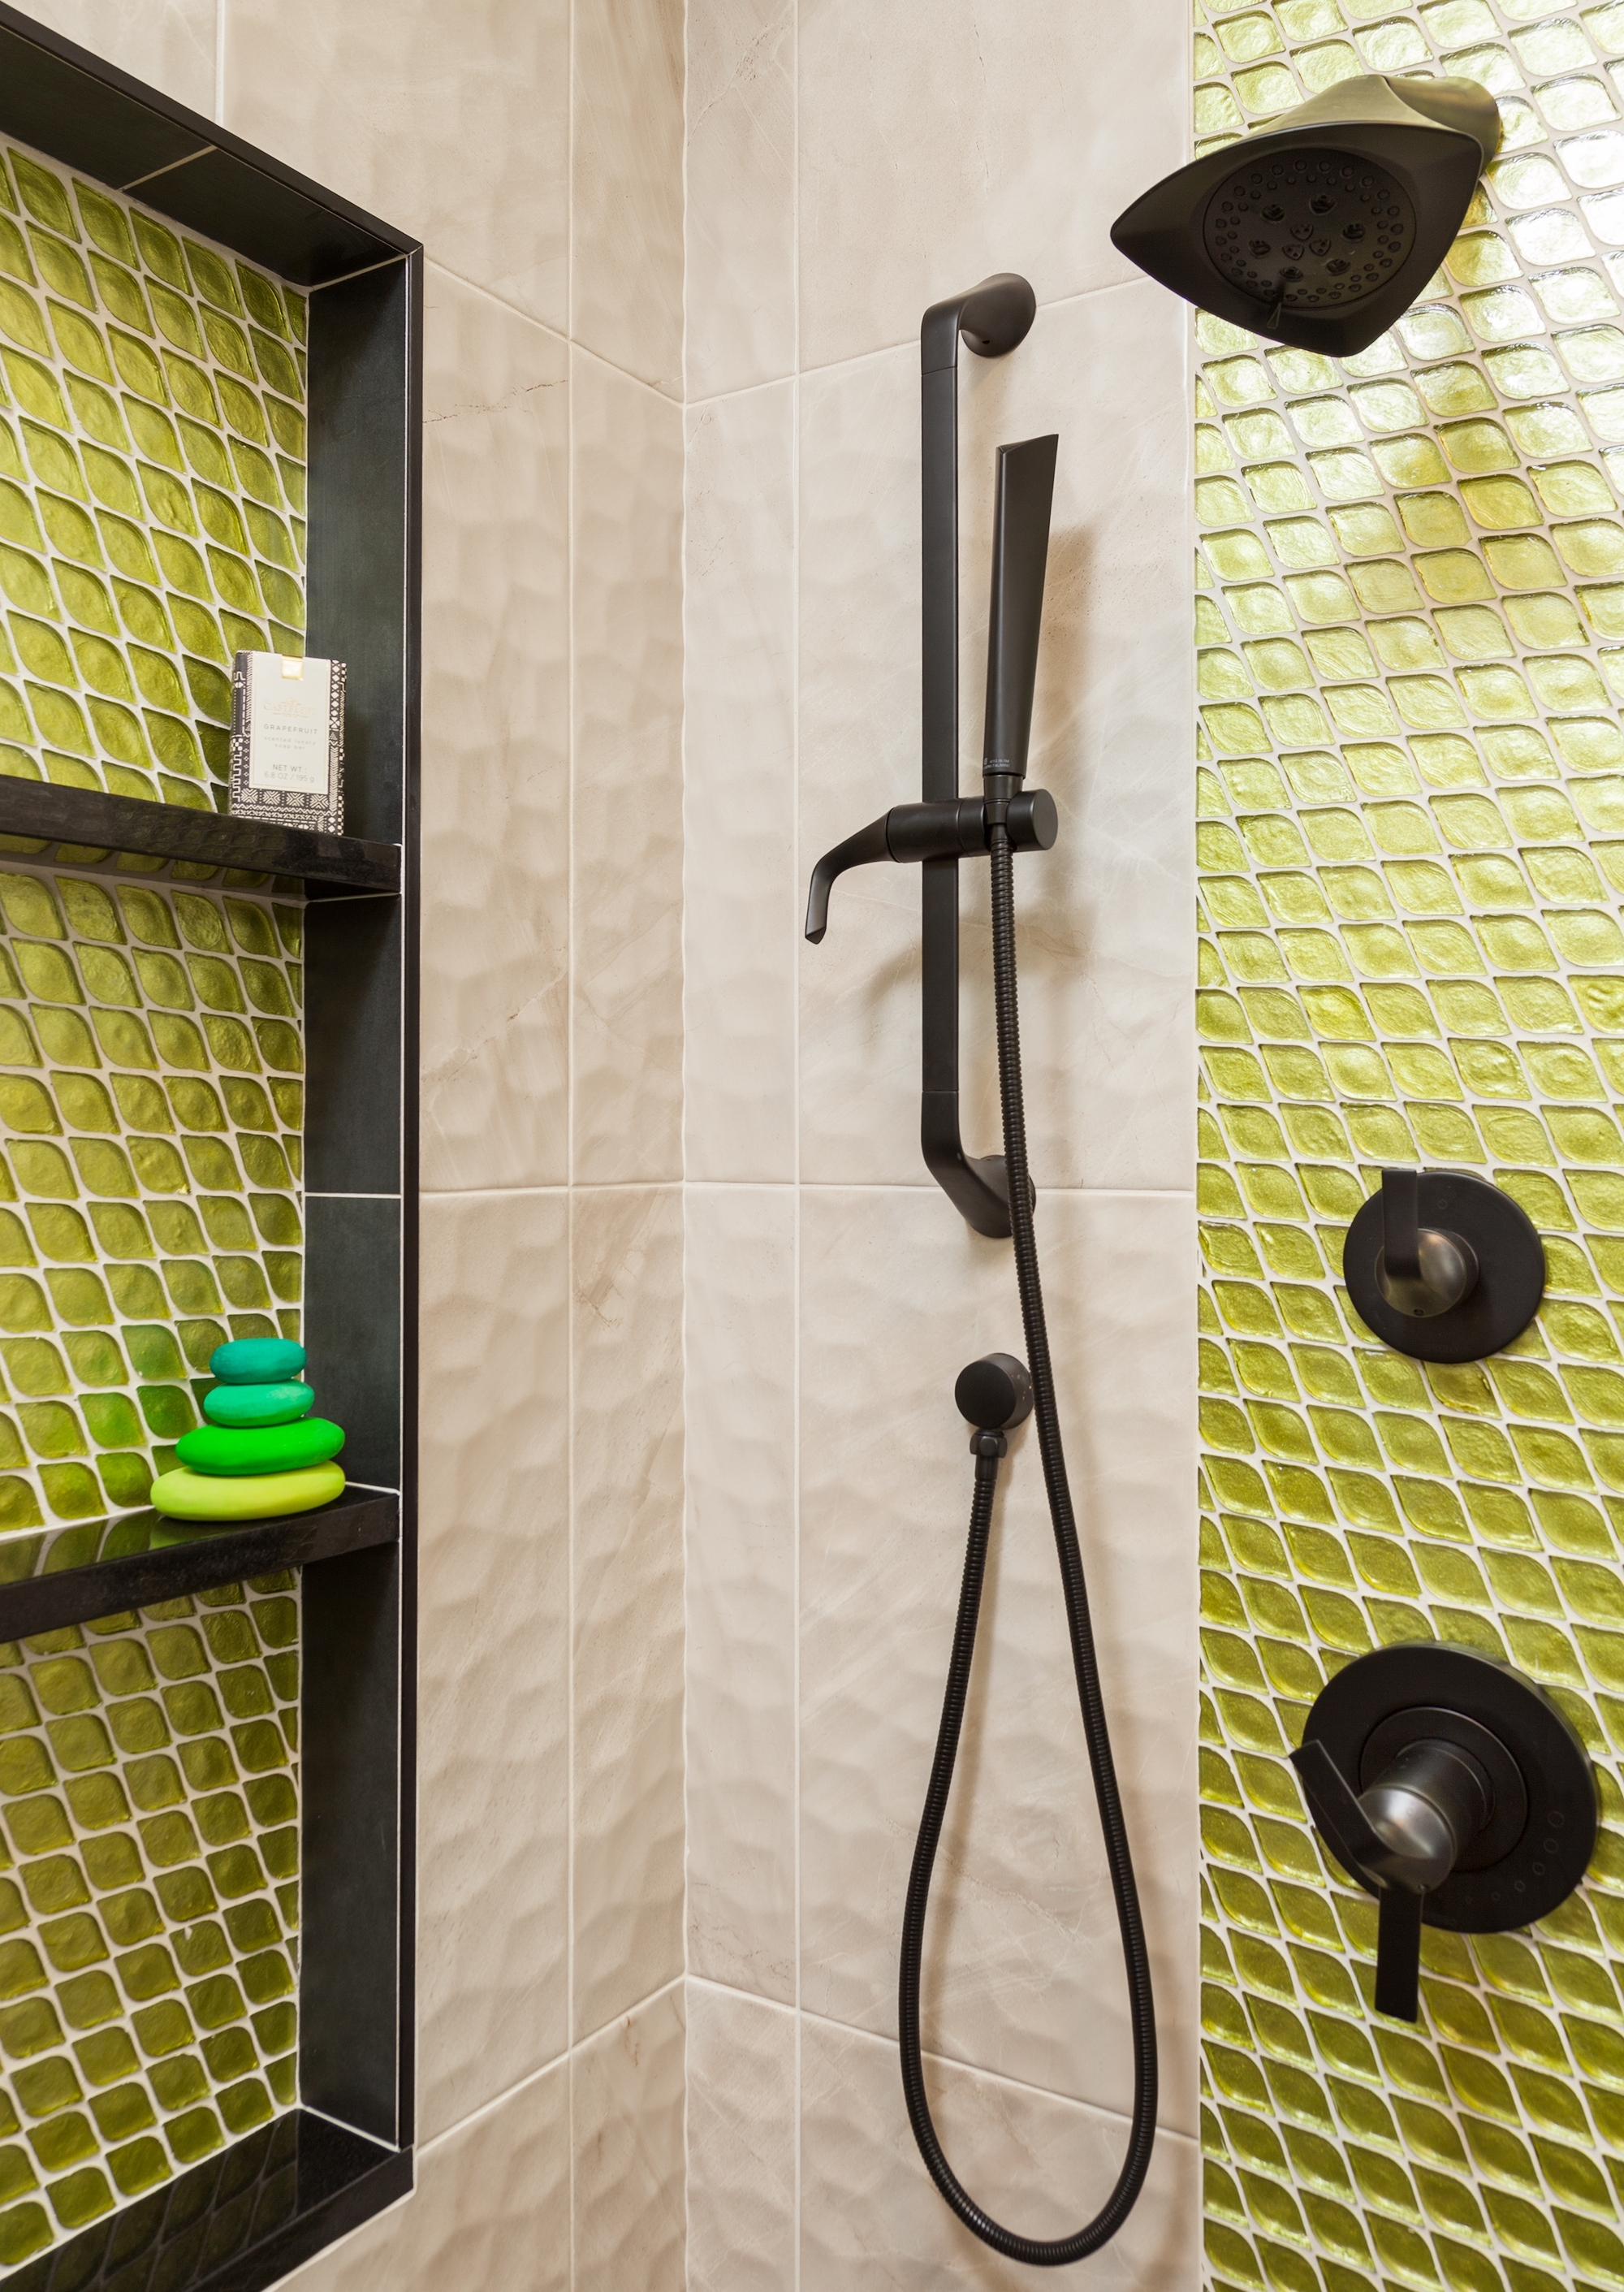 Bathroom Remodel - Make your bathroom shine with our bathroom remodeling services.